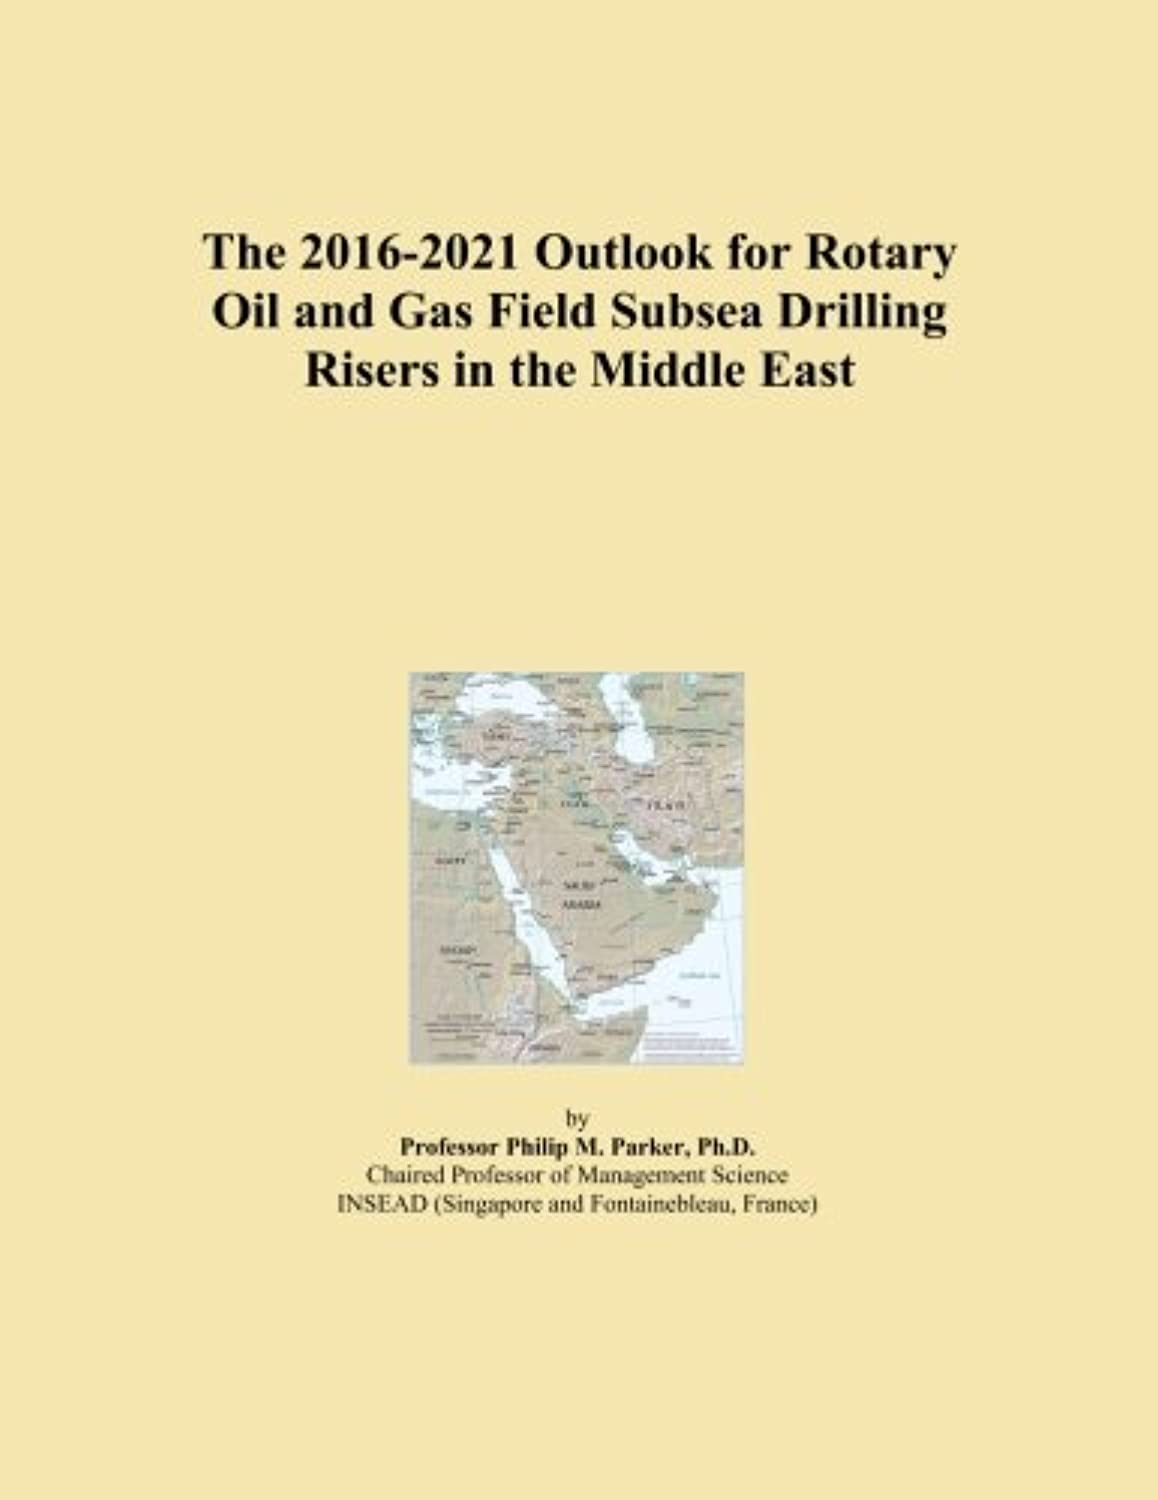 The 2016-2021 Outlook for Rotary Oil and Gas Field Subsea Drilling Risers in the Middle East